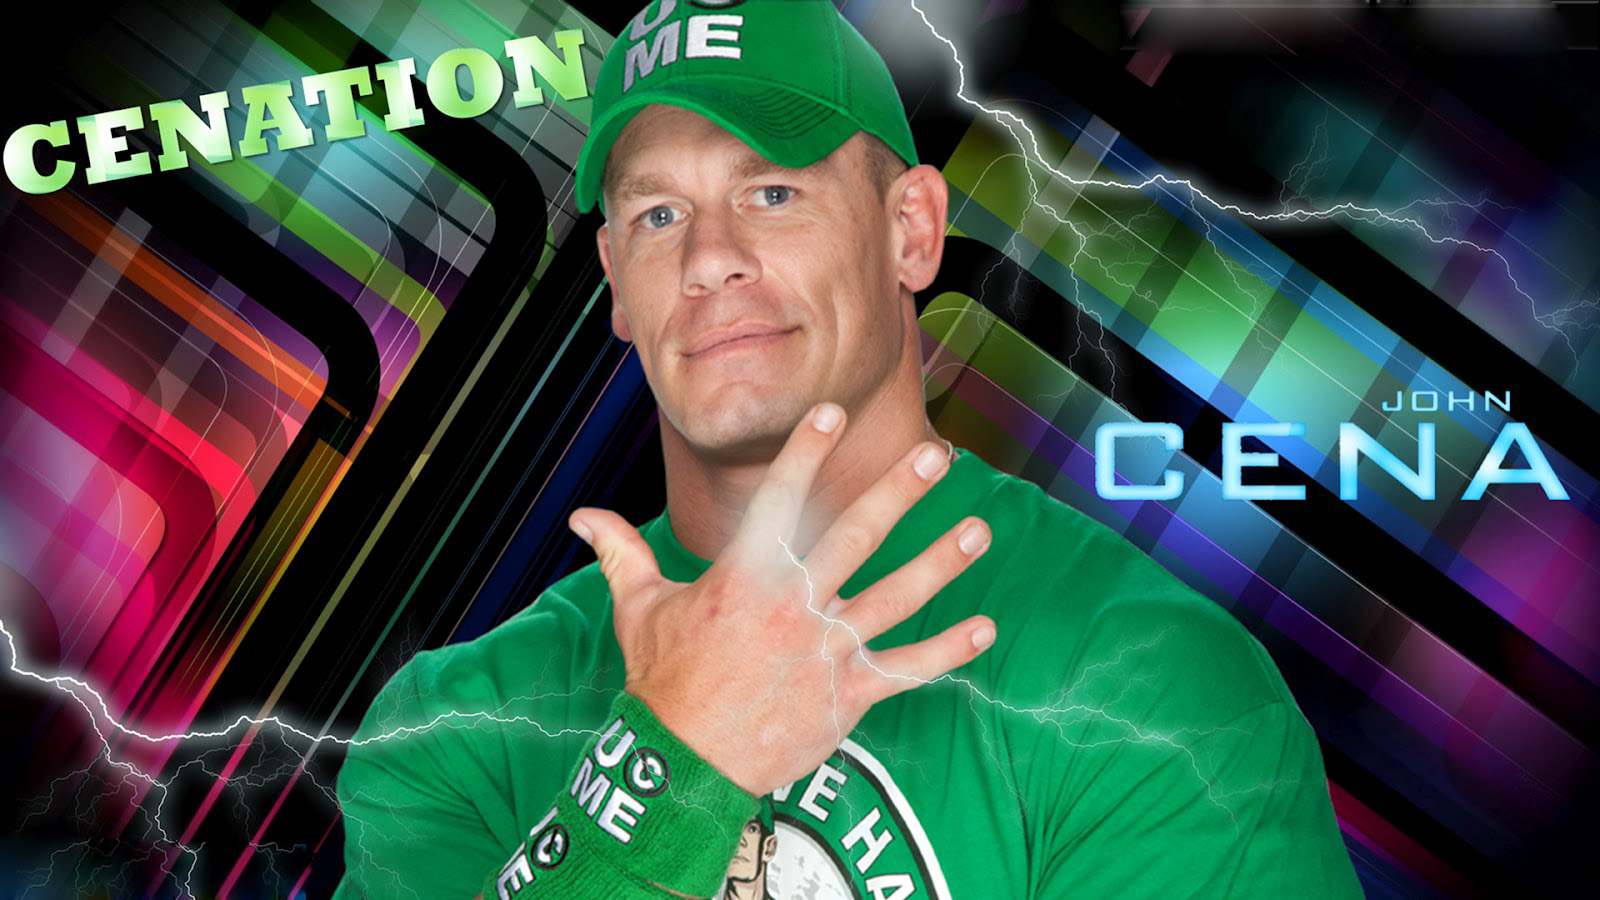 Free Download Wwe John Cena Hd Wallpapers 1600x900